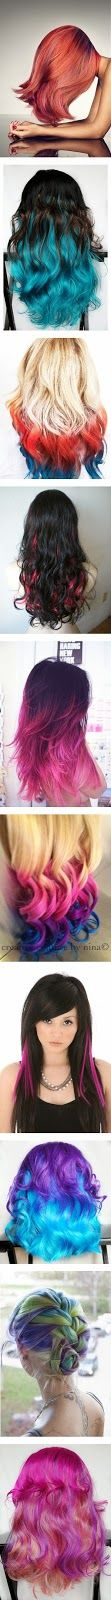 Color Ideas For Your Hair